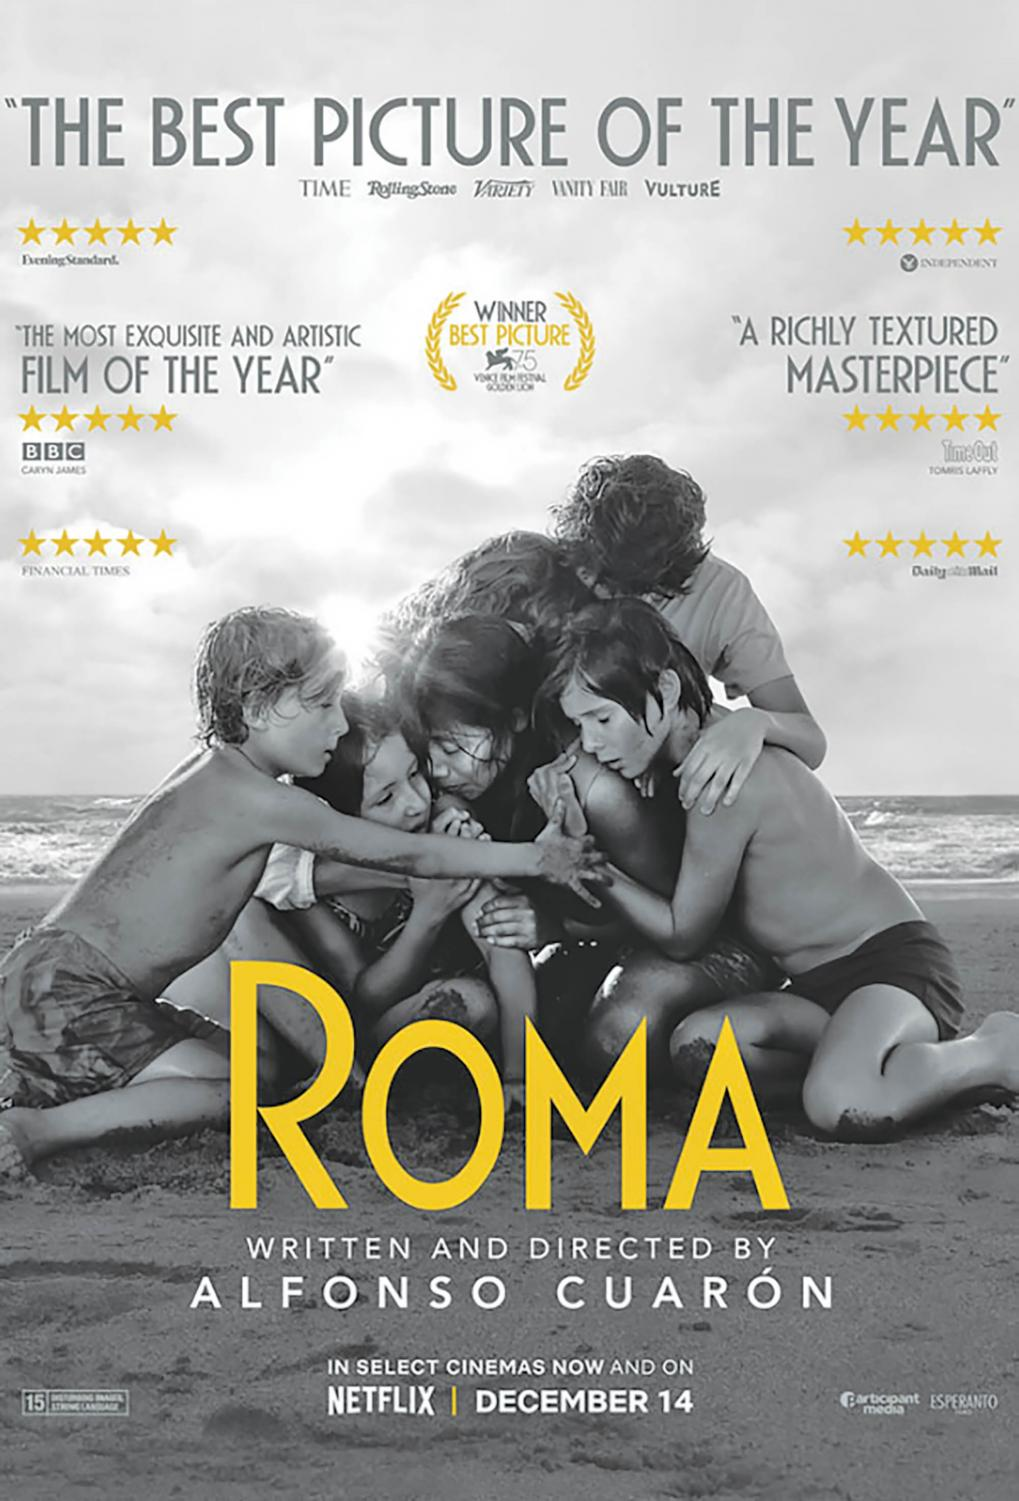 Roma is nominated for 10 Academy Awards this year.